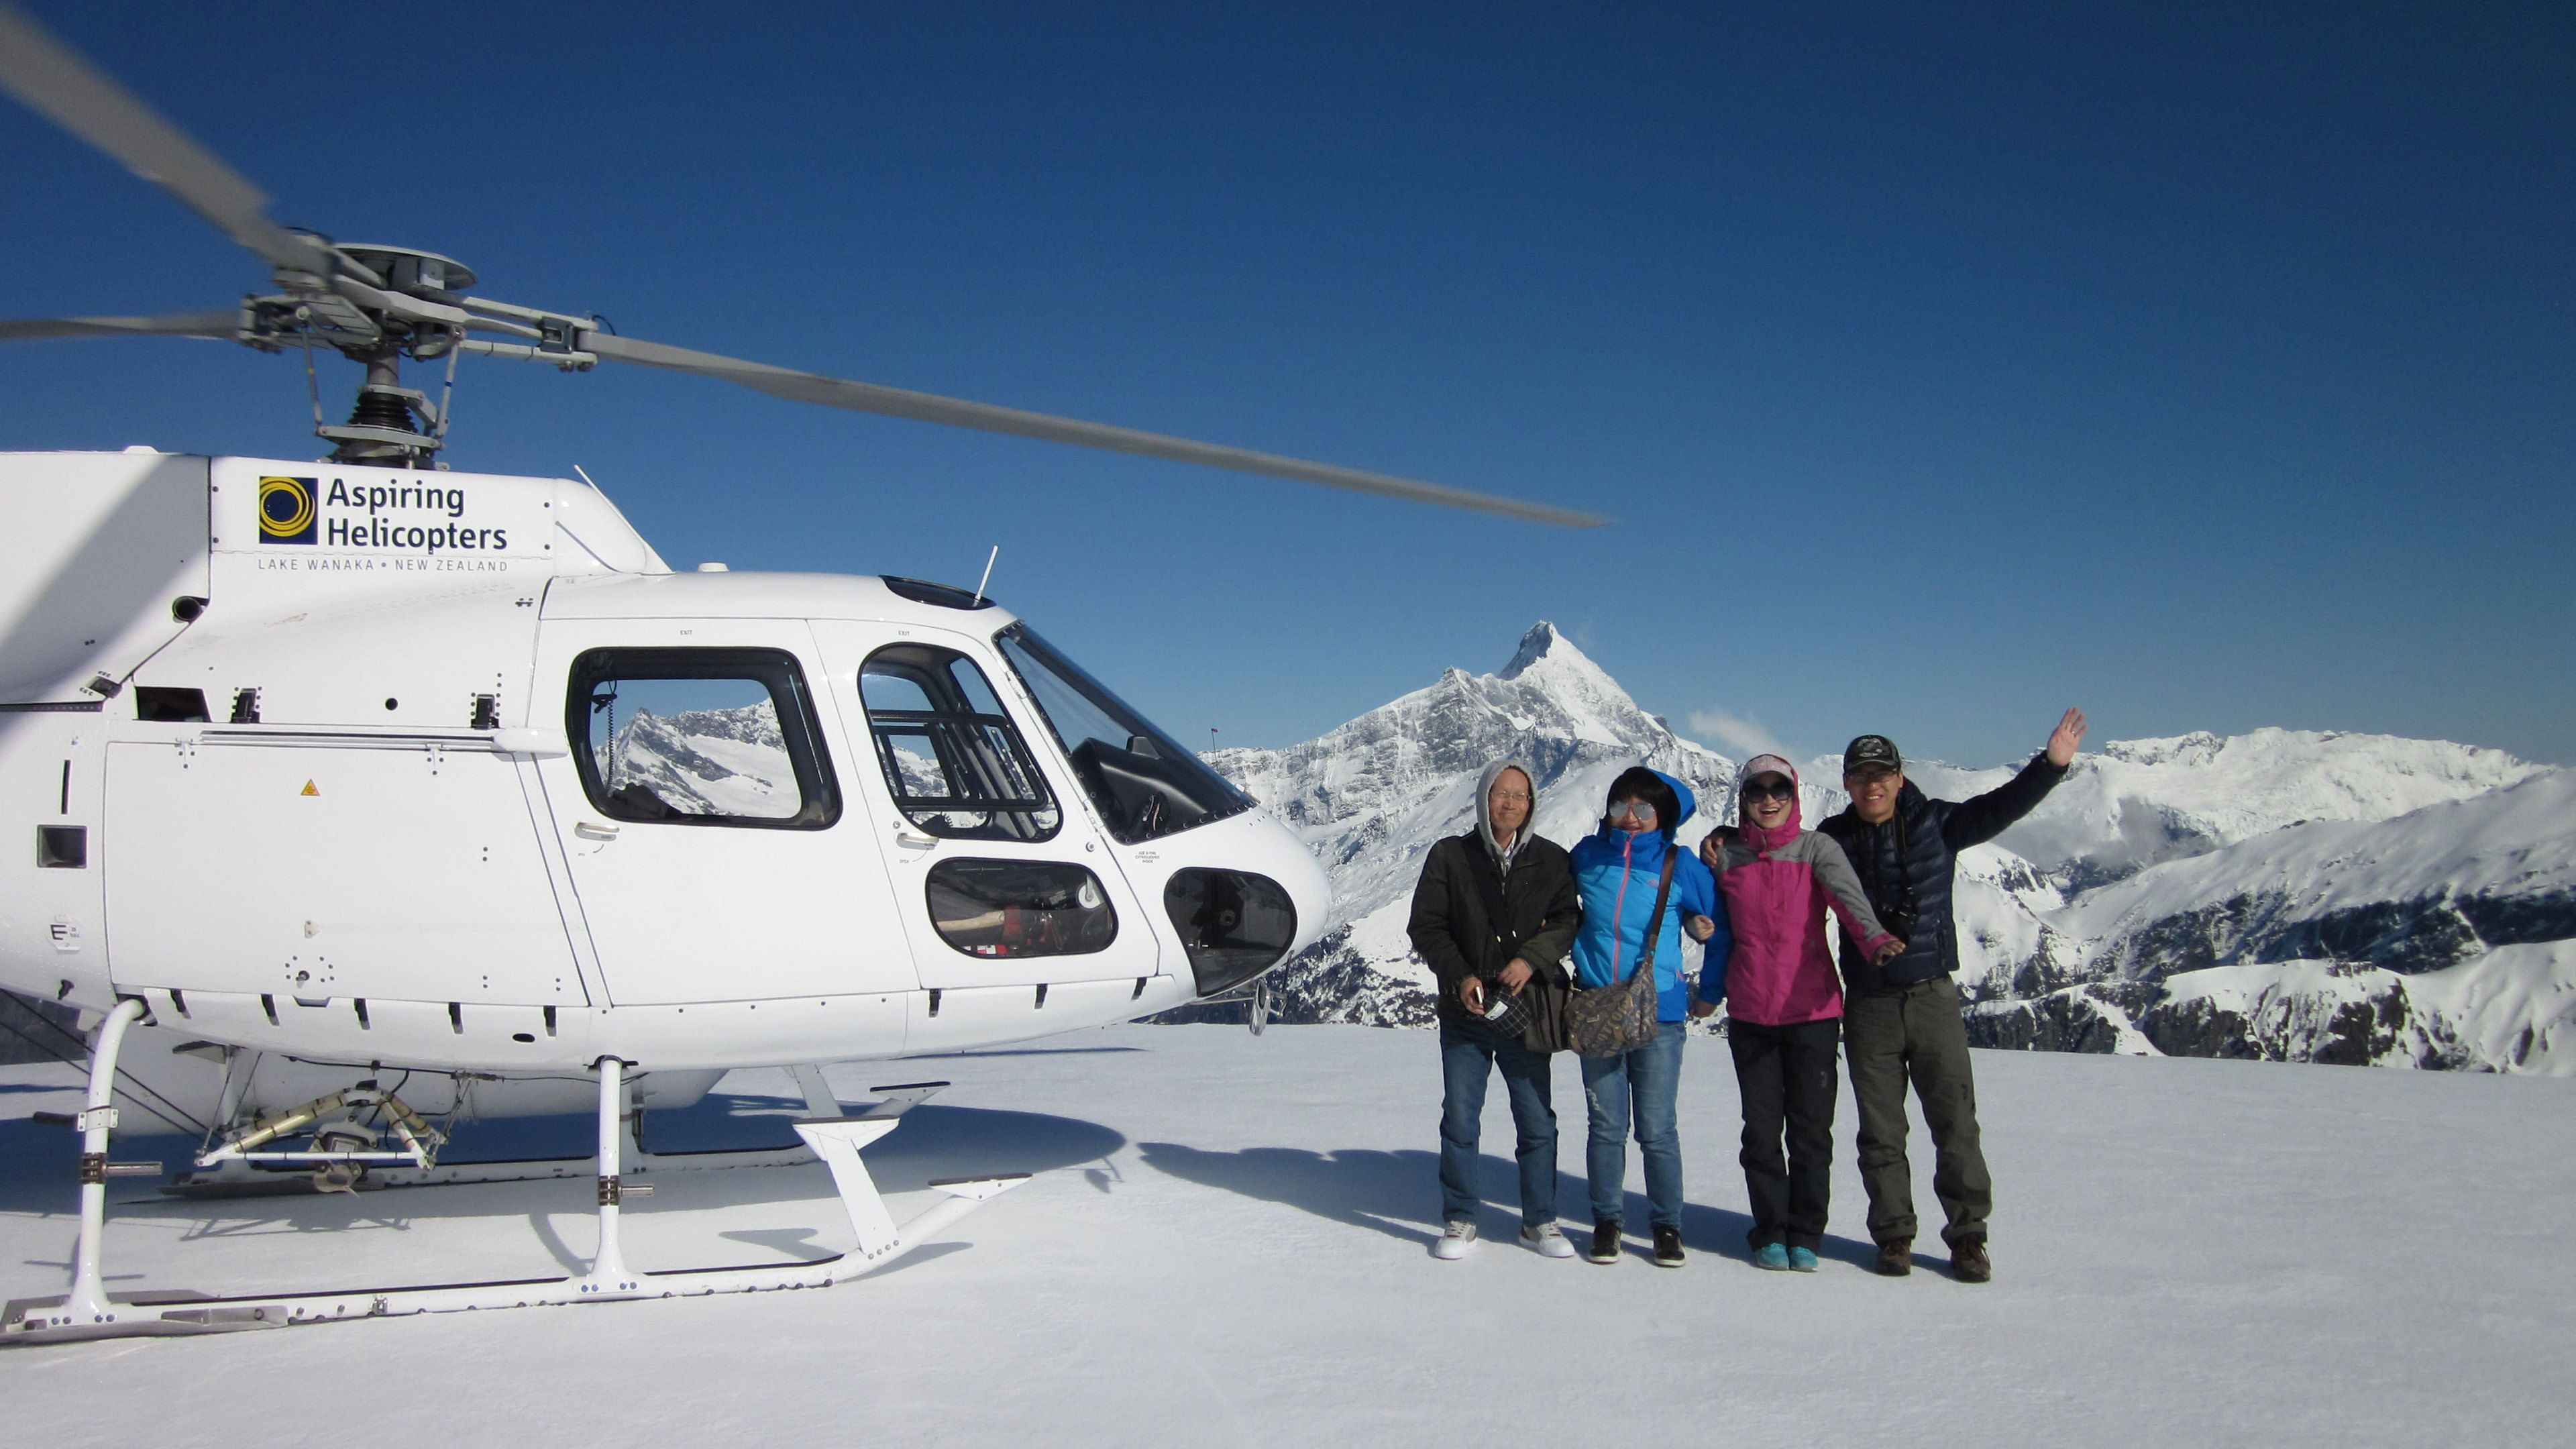 Group stands next to Helicopter on snowy mountain top